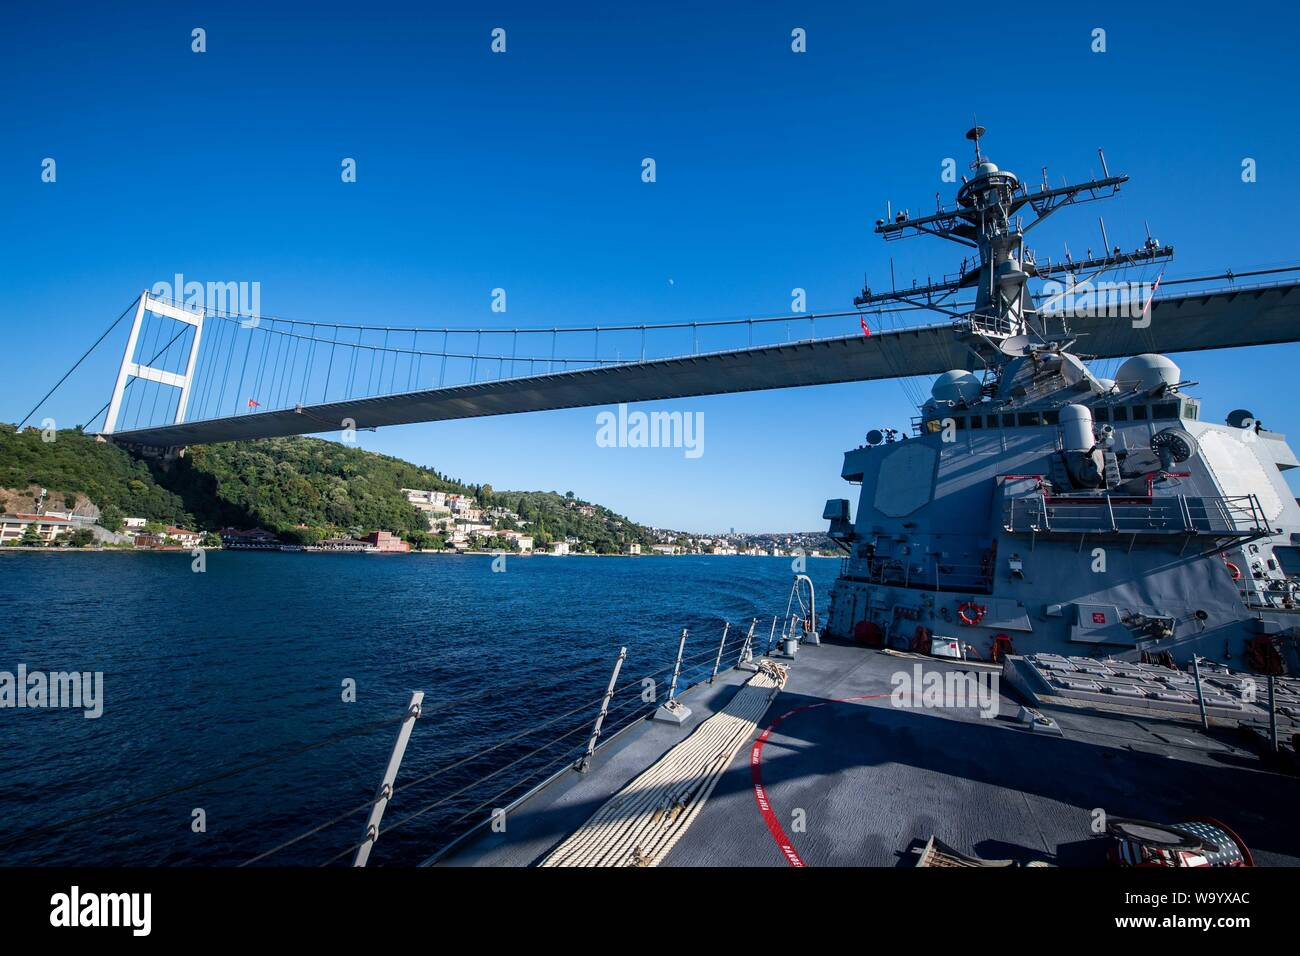 BLACK SEA (Aug. 8, 2019) — The Arleigh Burke-class guided-missile destroyer USS Porter (DDG 78) transits the Bosphorus Strait Aug. 8, 2019. Porter, forward-deployed to Rota, Spain, is on its seventh patrol in the U.S. 6th Fleet area of operations in support of U.S. national security interests in Europe and Africa. (U.S. Navy photo by Mass Communication Specialist 3rd Class T. Logan Keown/Released) Stock Photo